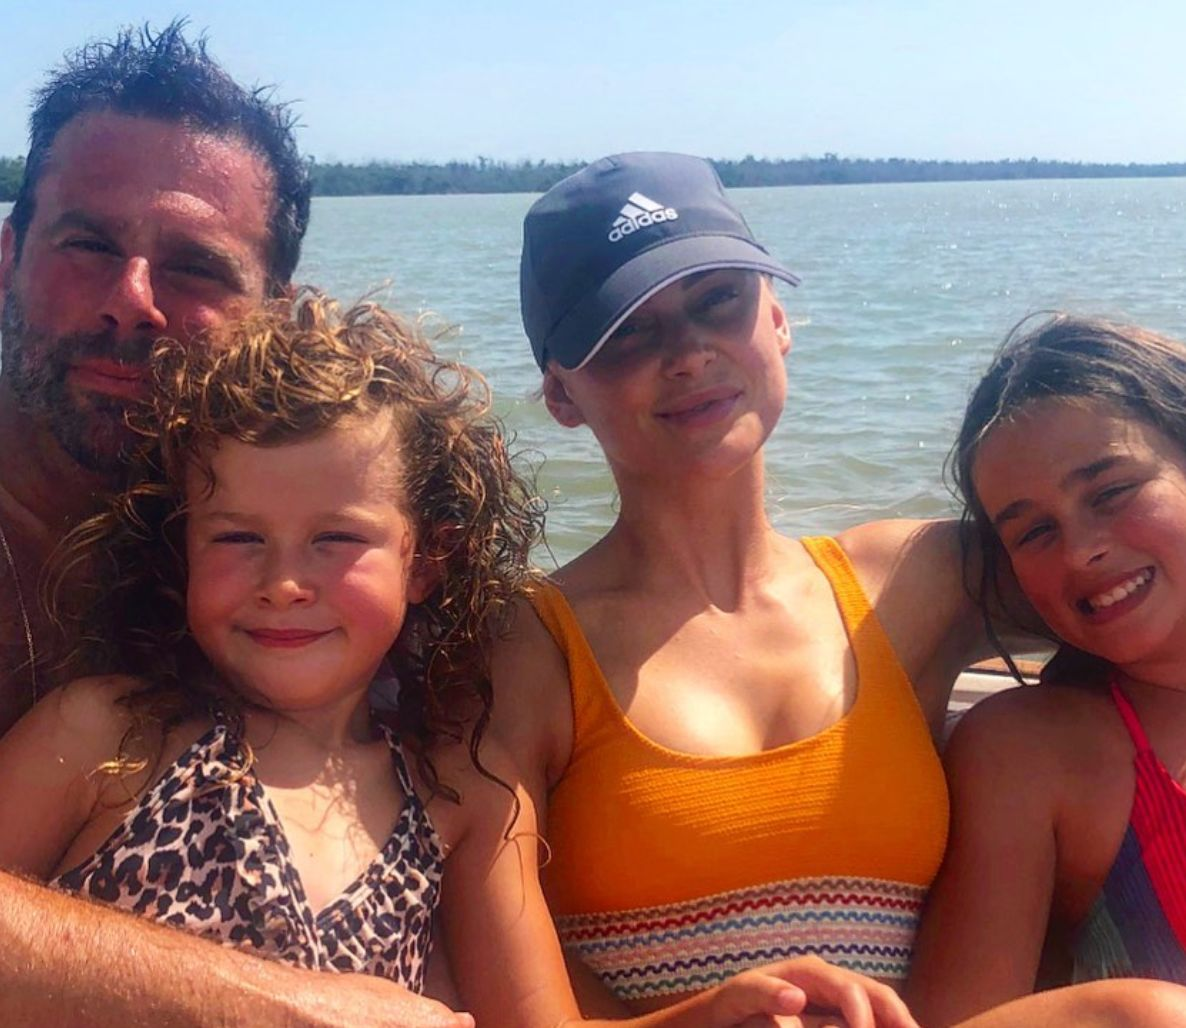 Randall Emmett and Lala Kent vacation with his daughters.